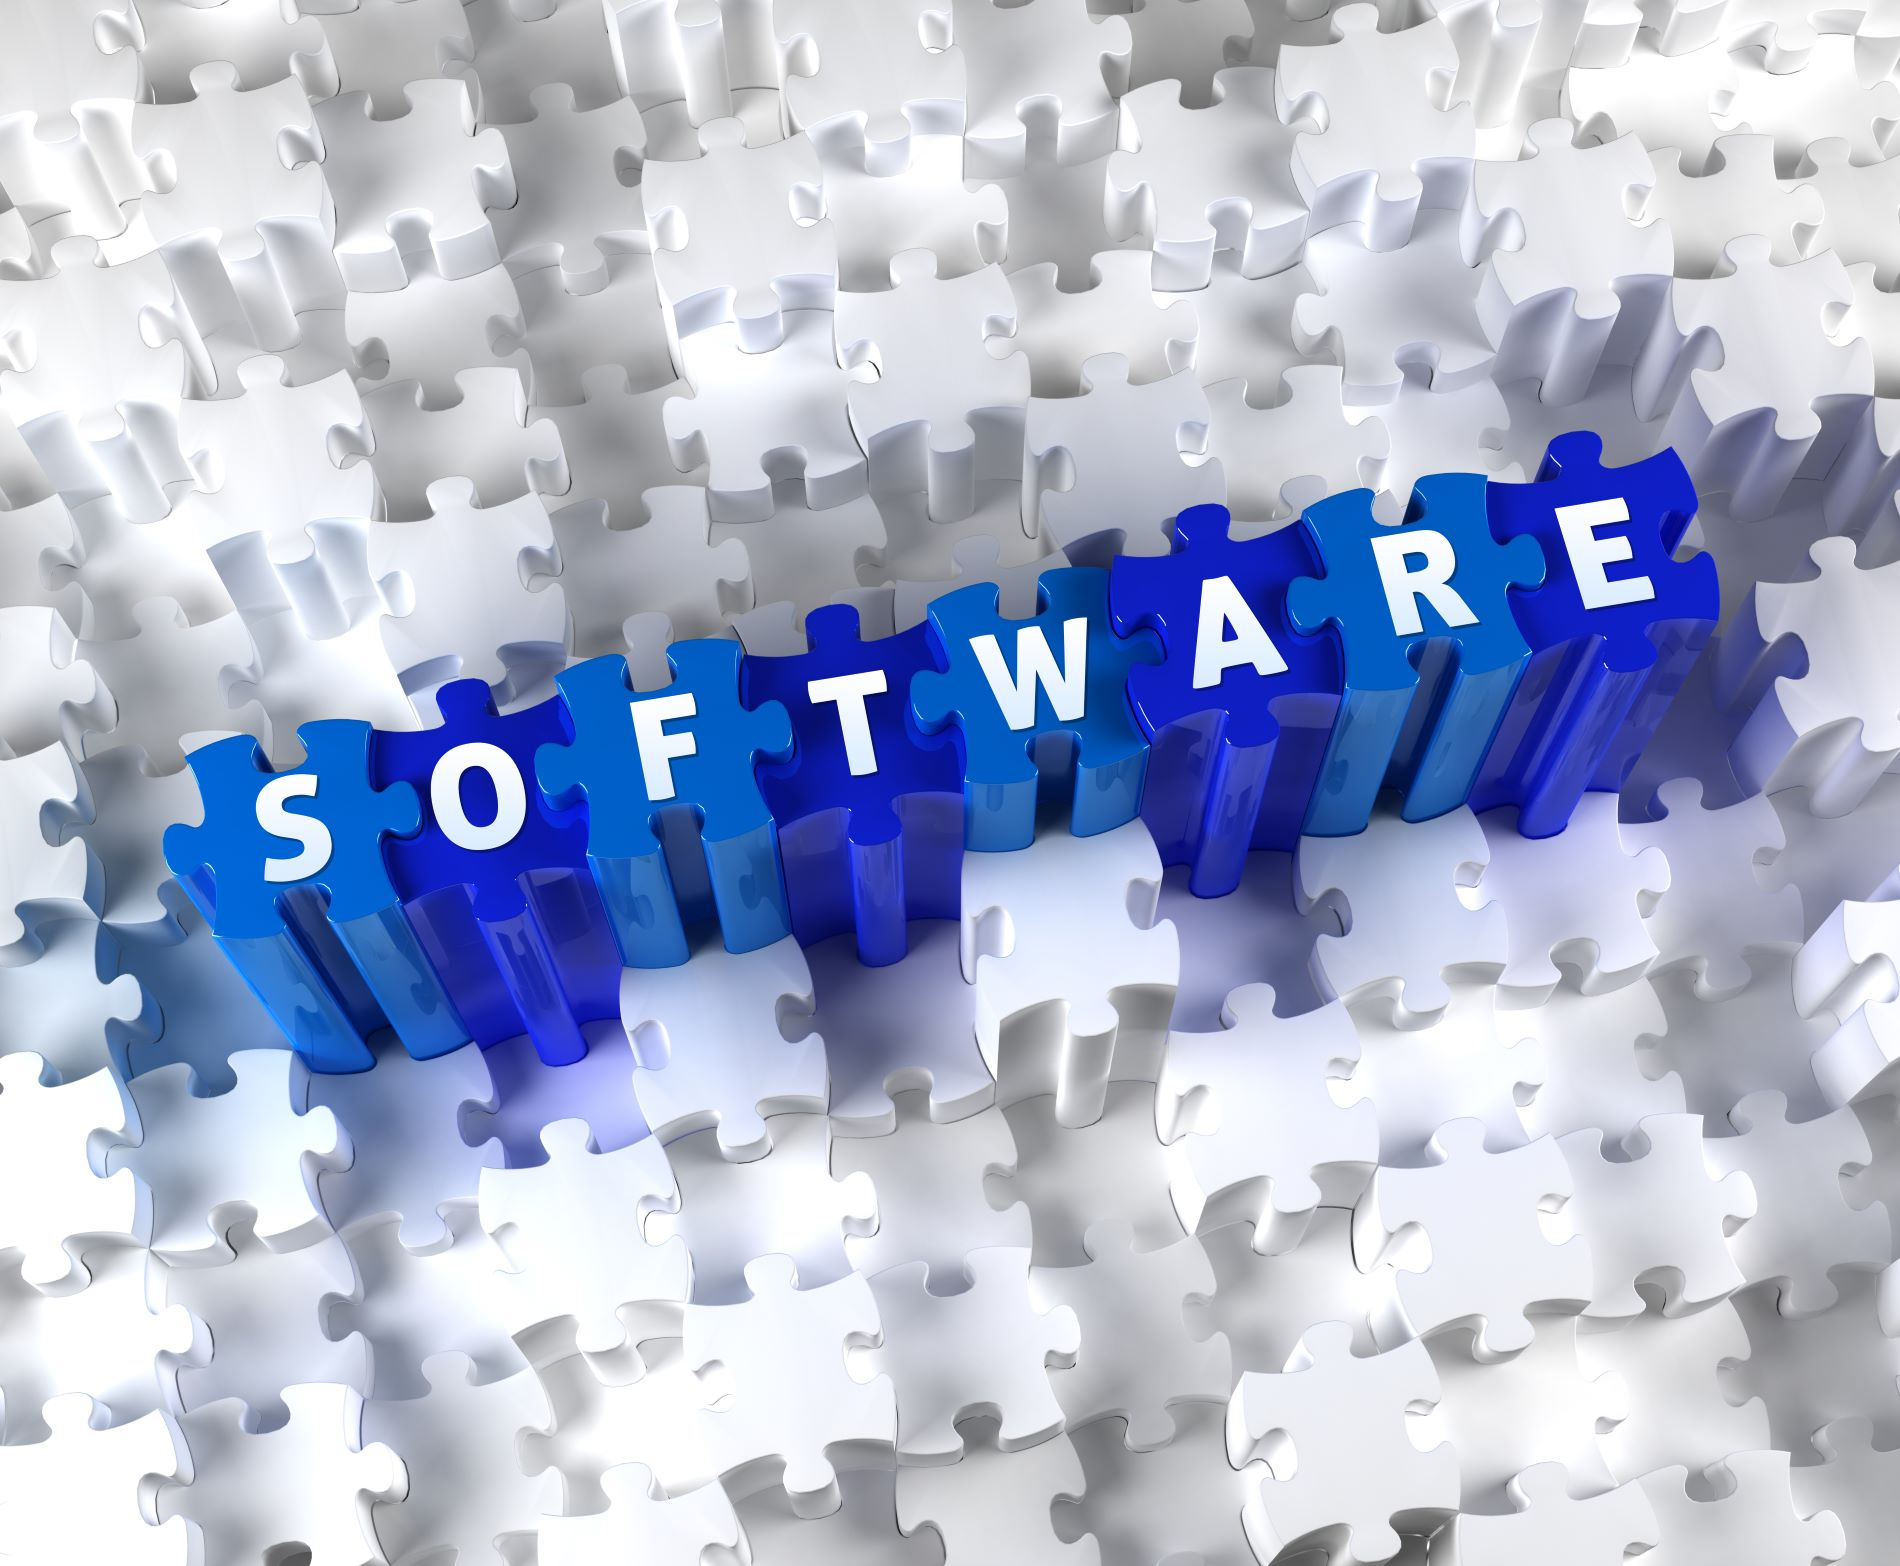 Consolidating software for health plans